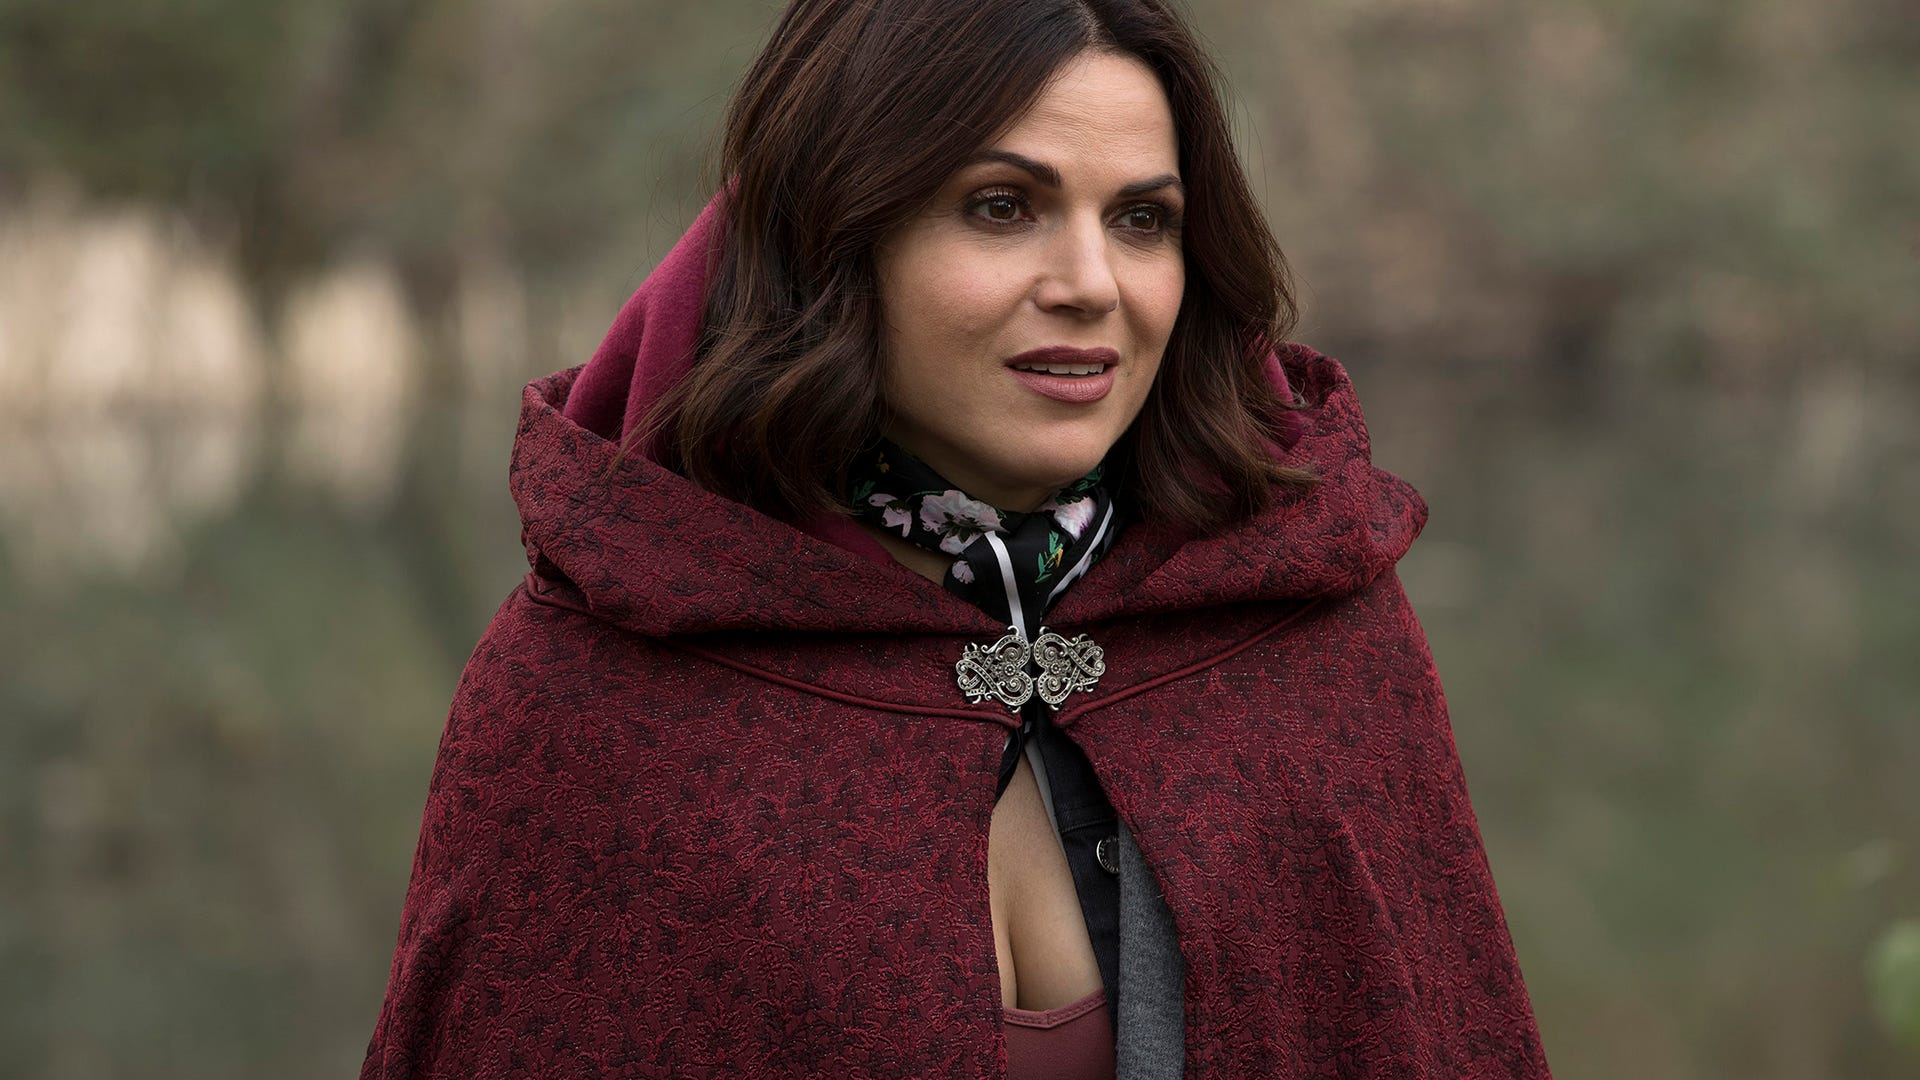 Lana Parrilla, Once Upon a Time